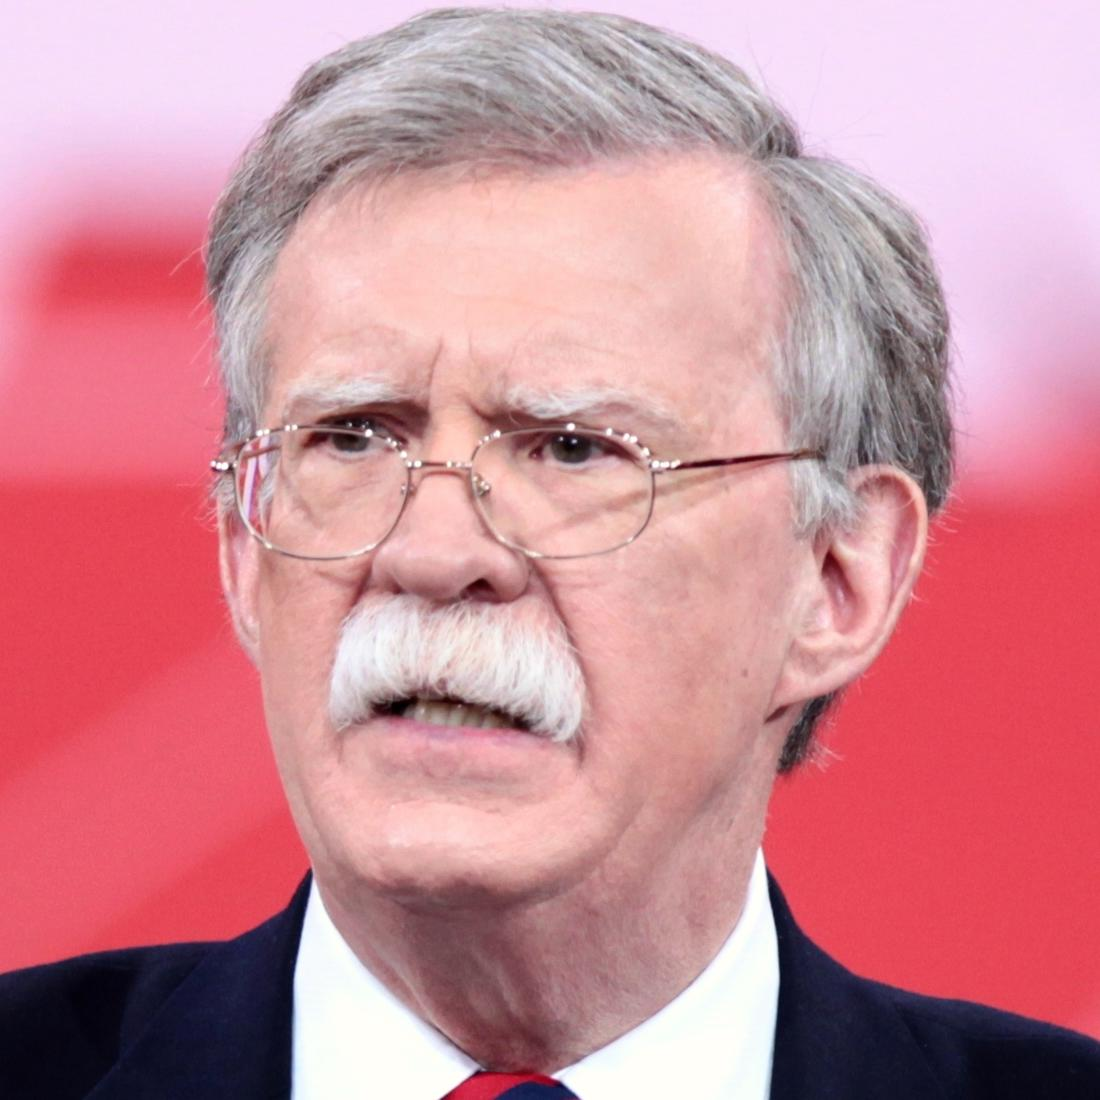 John Bolton Bio, Net Worth, Facts